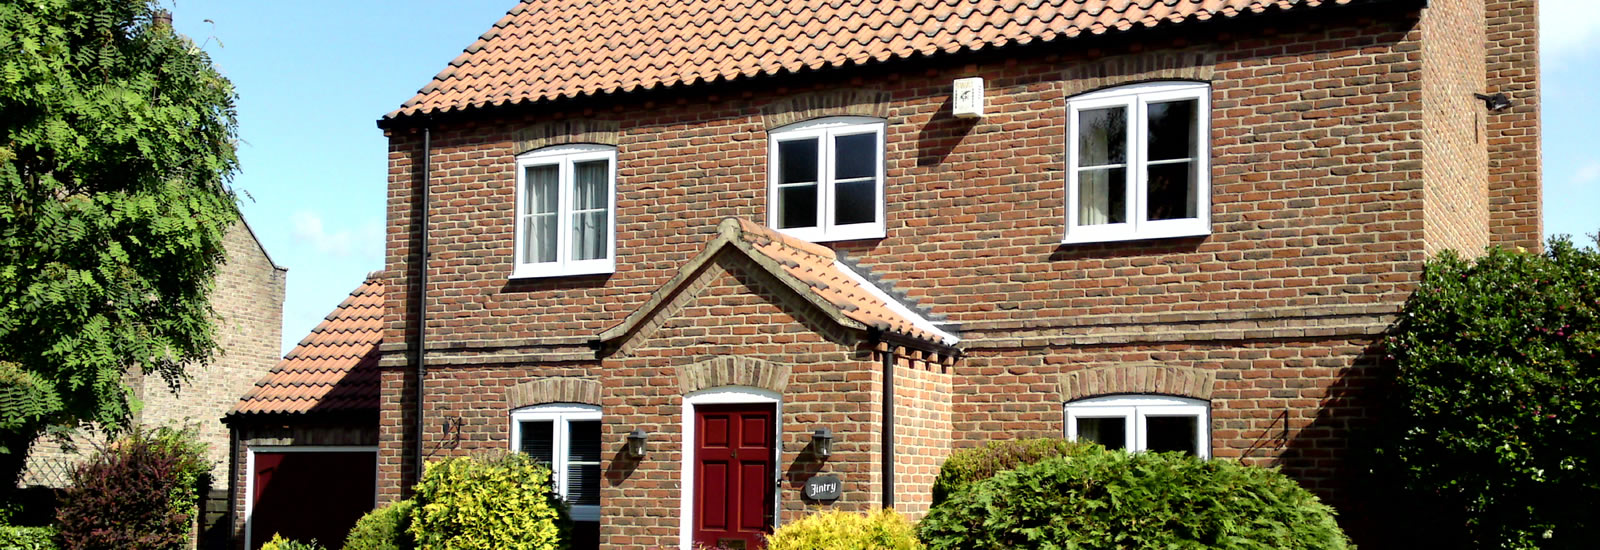 uPVC casement windows york selby harrogate